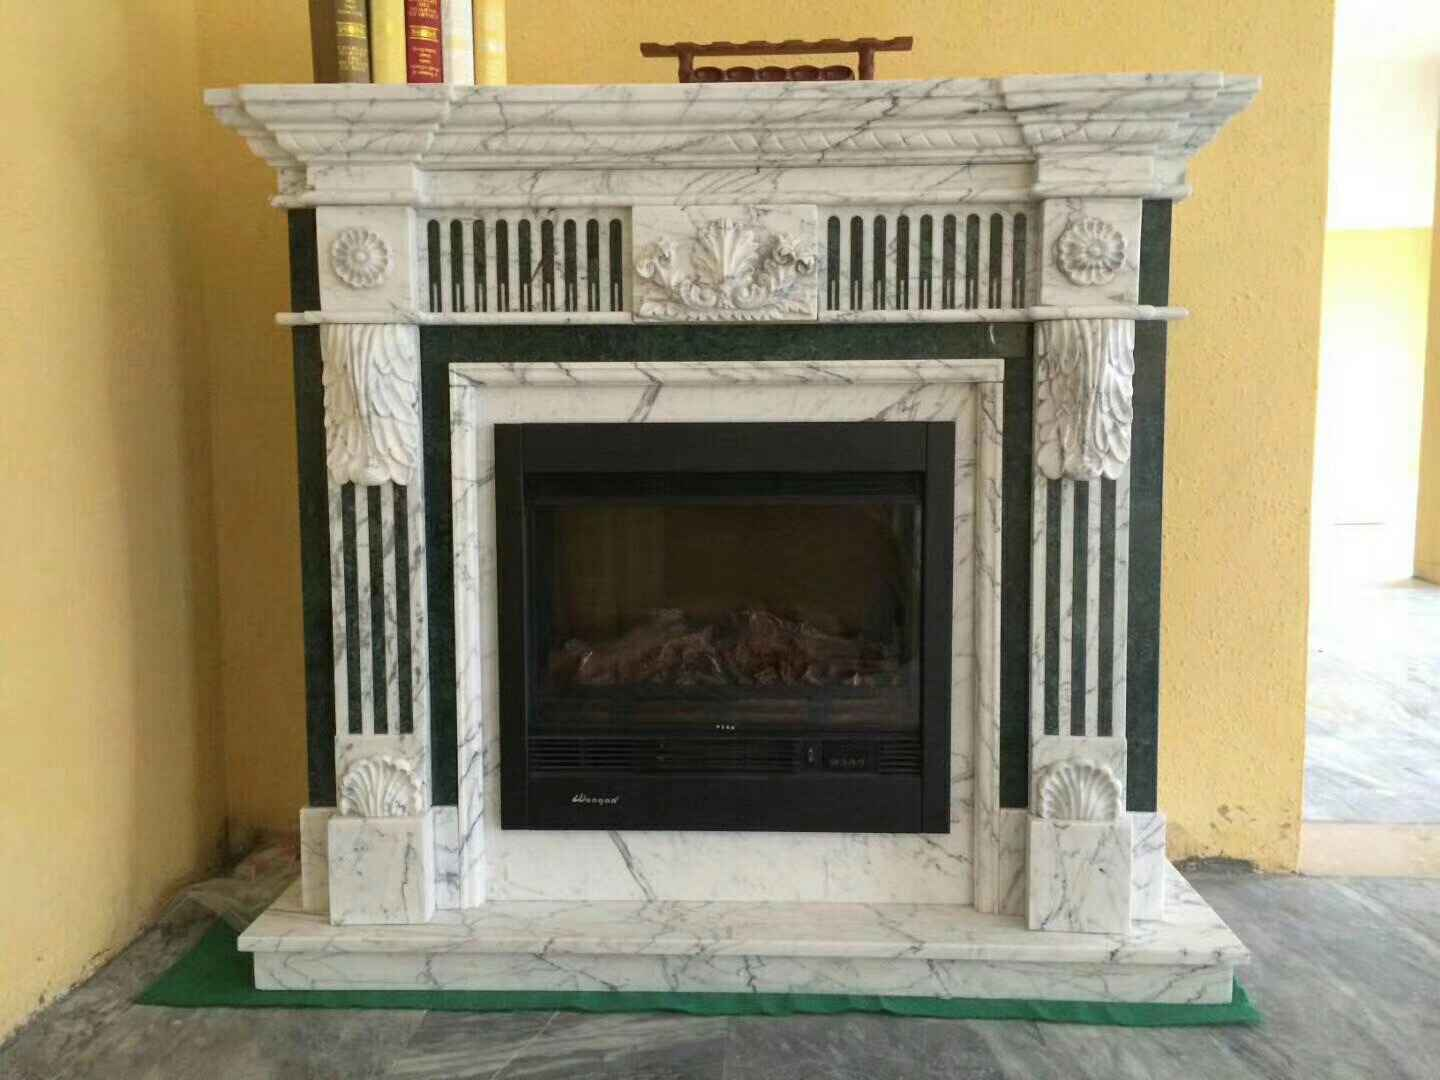 stand alone fireplace,types of fireplaces,fireplaces near me,fire surrounds,open fireplace,buy fireplace,modern fireplace designs,contemporary gas fireplace home fireplace